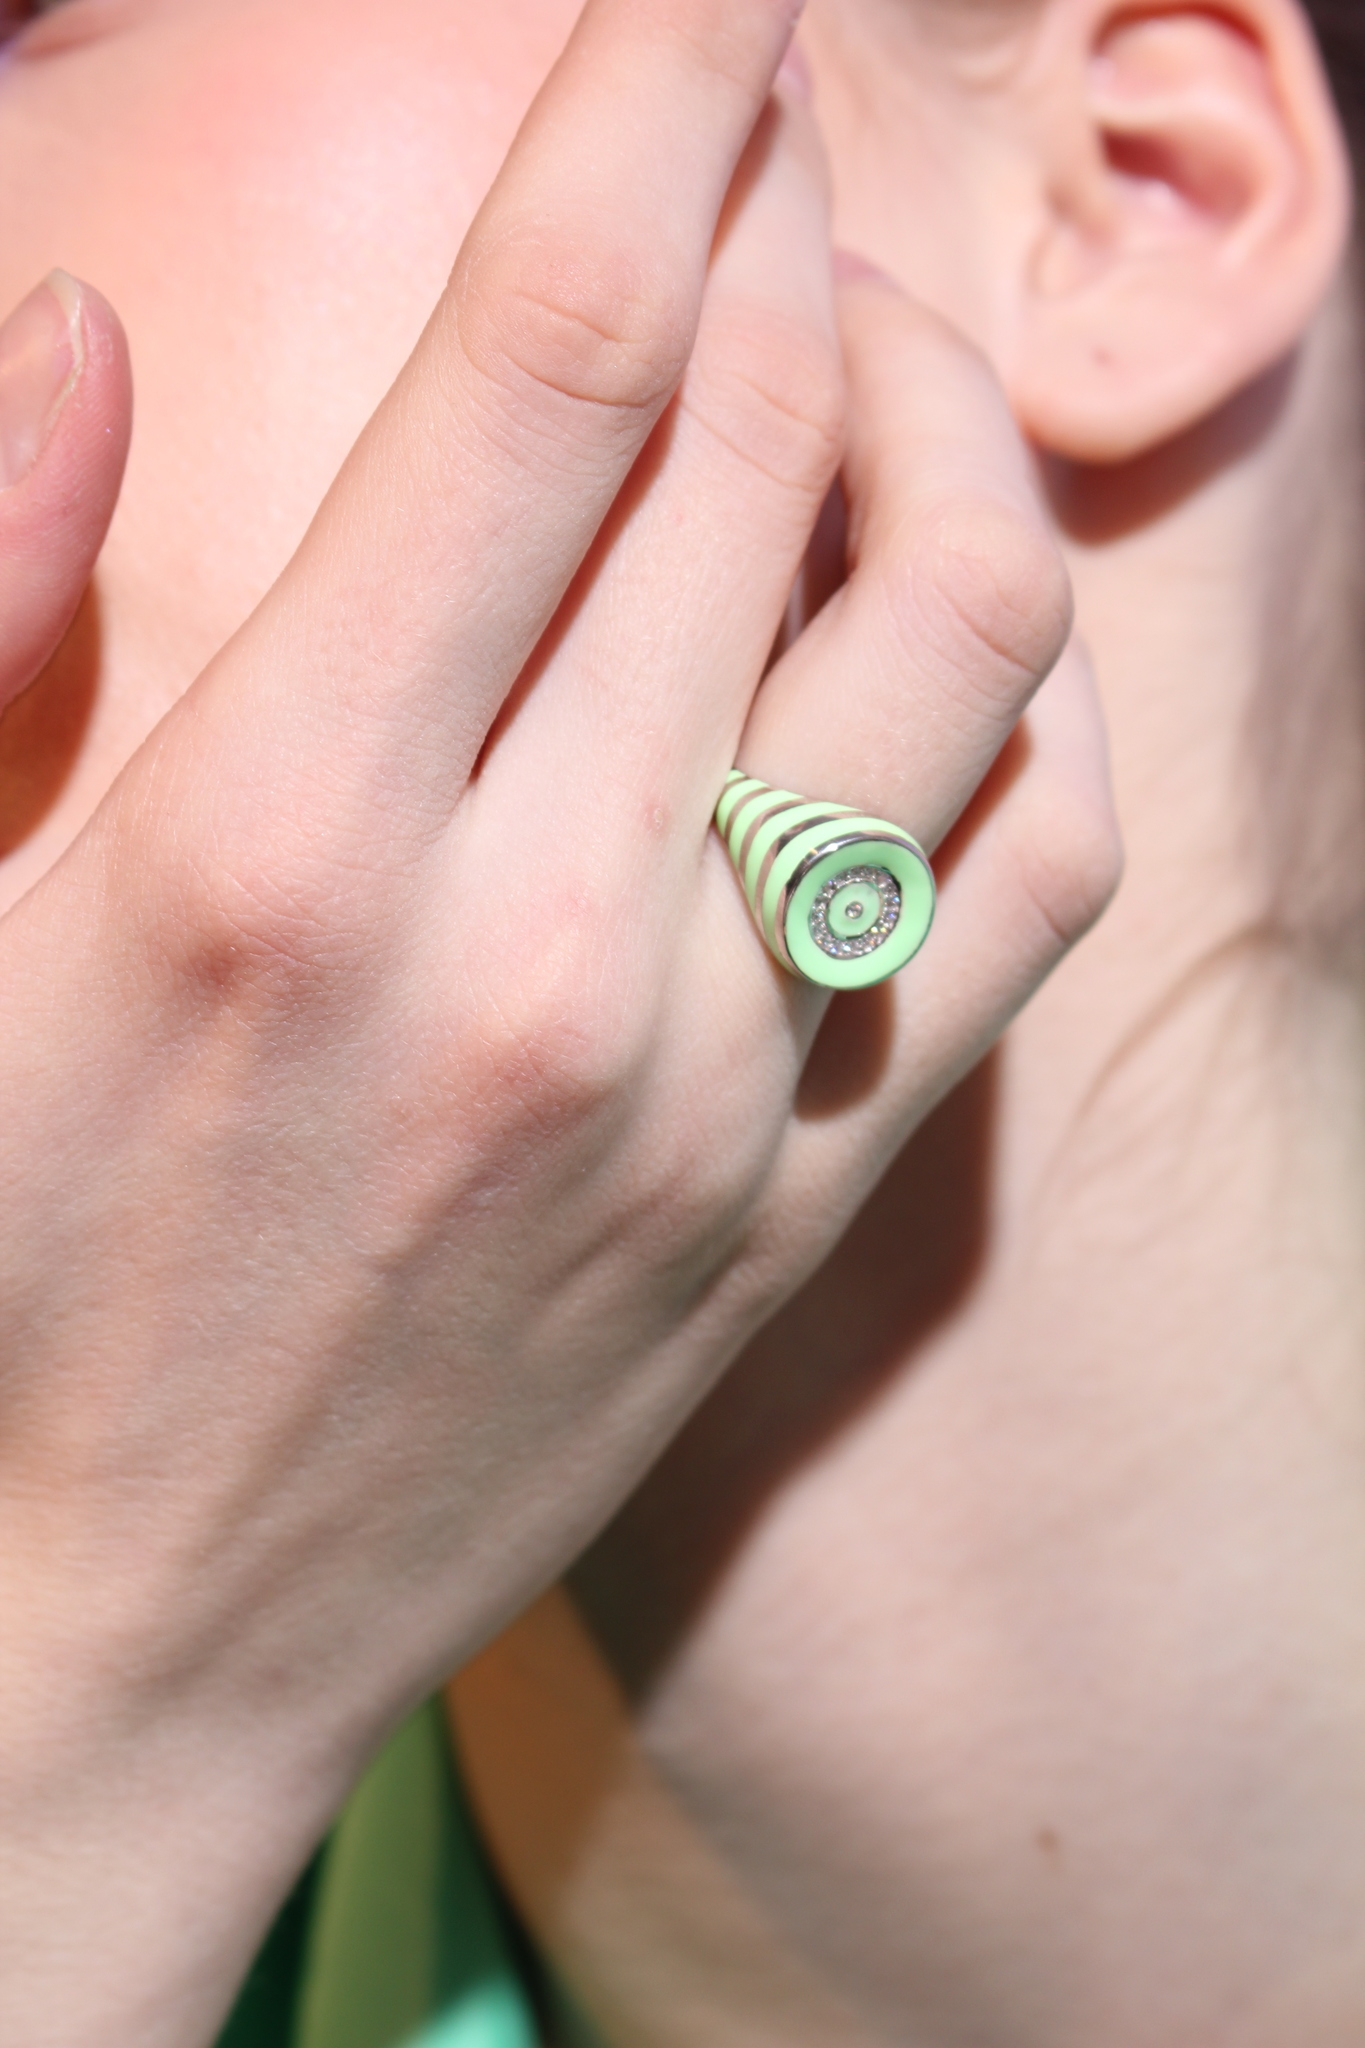 Round signet ring in silver with light green enamel stripes